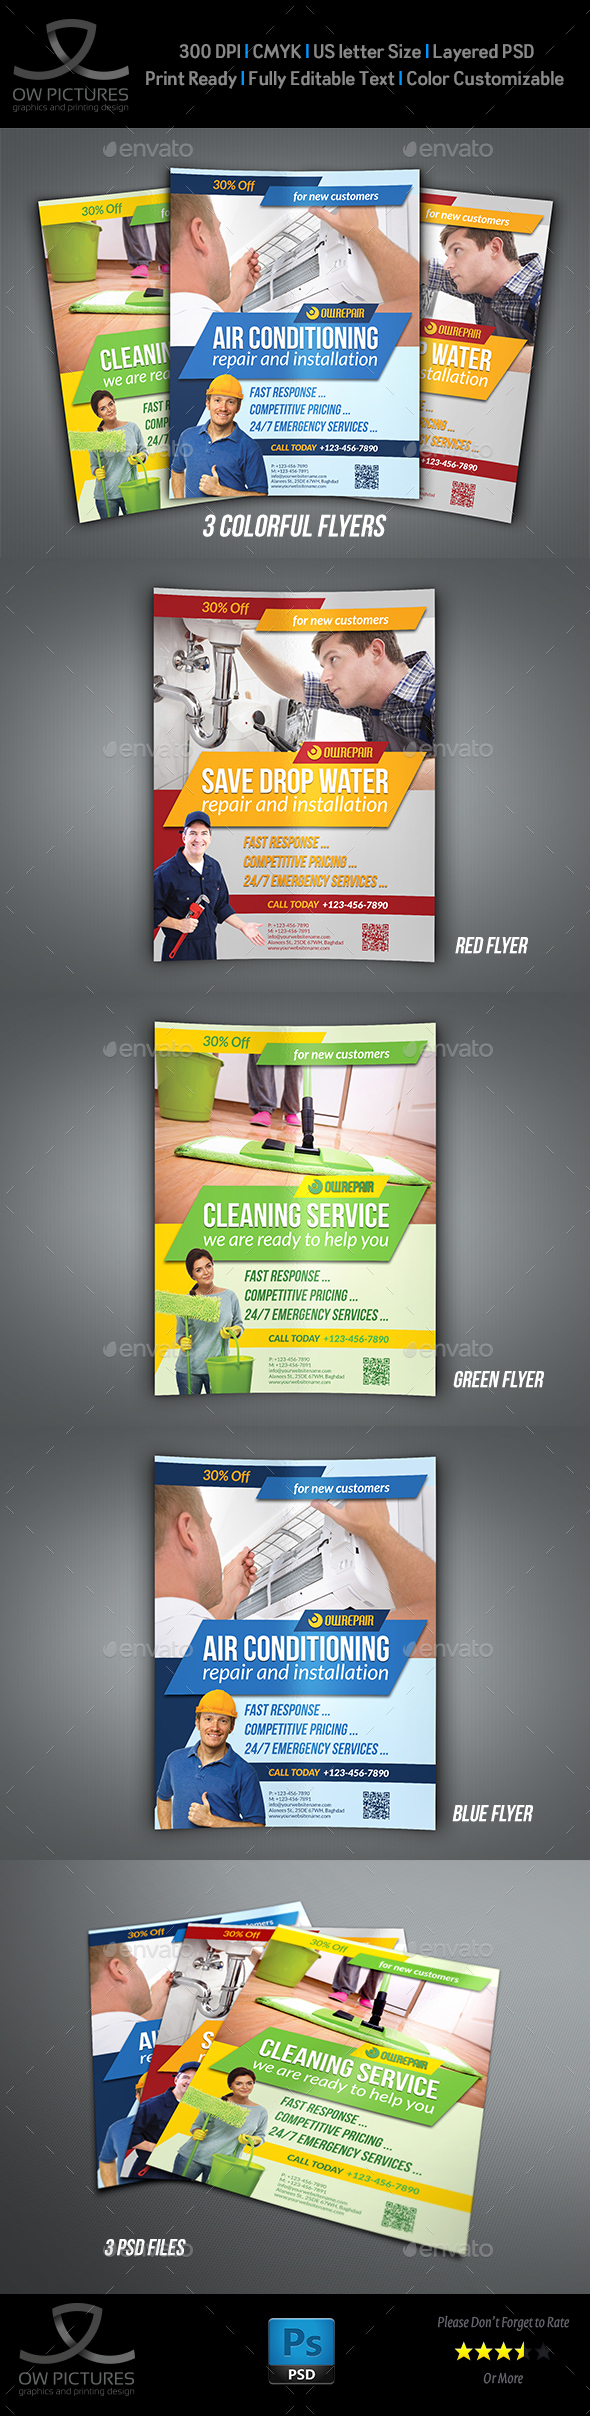 Services Flyer Template - Commerce Flyers